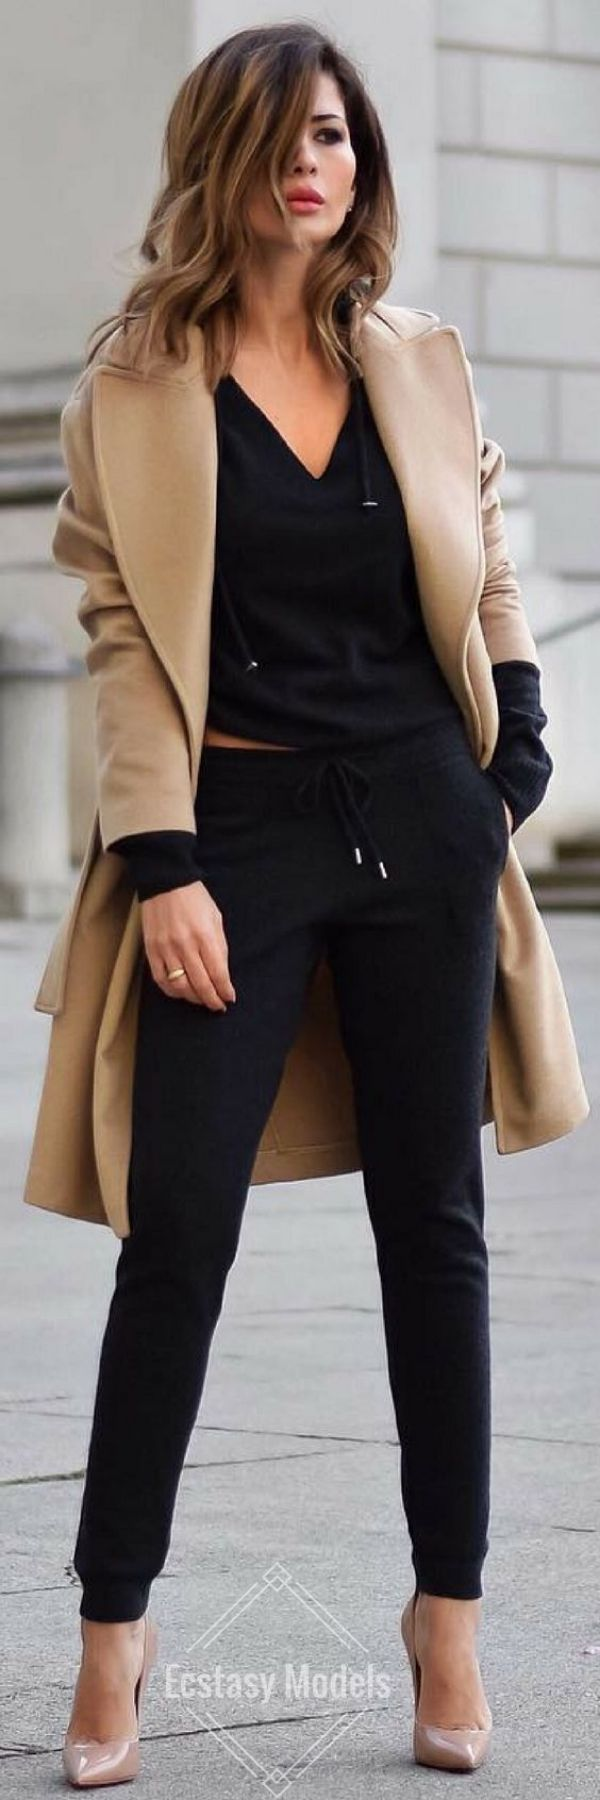 Trench Coat is Always a Great Idea ||| 85 Casual Work Outfits Ideas 2017